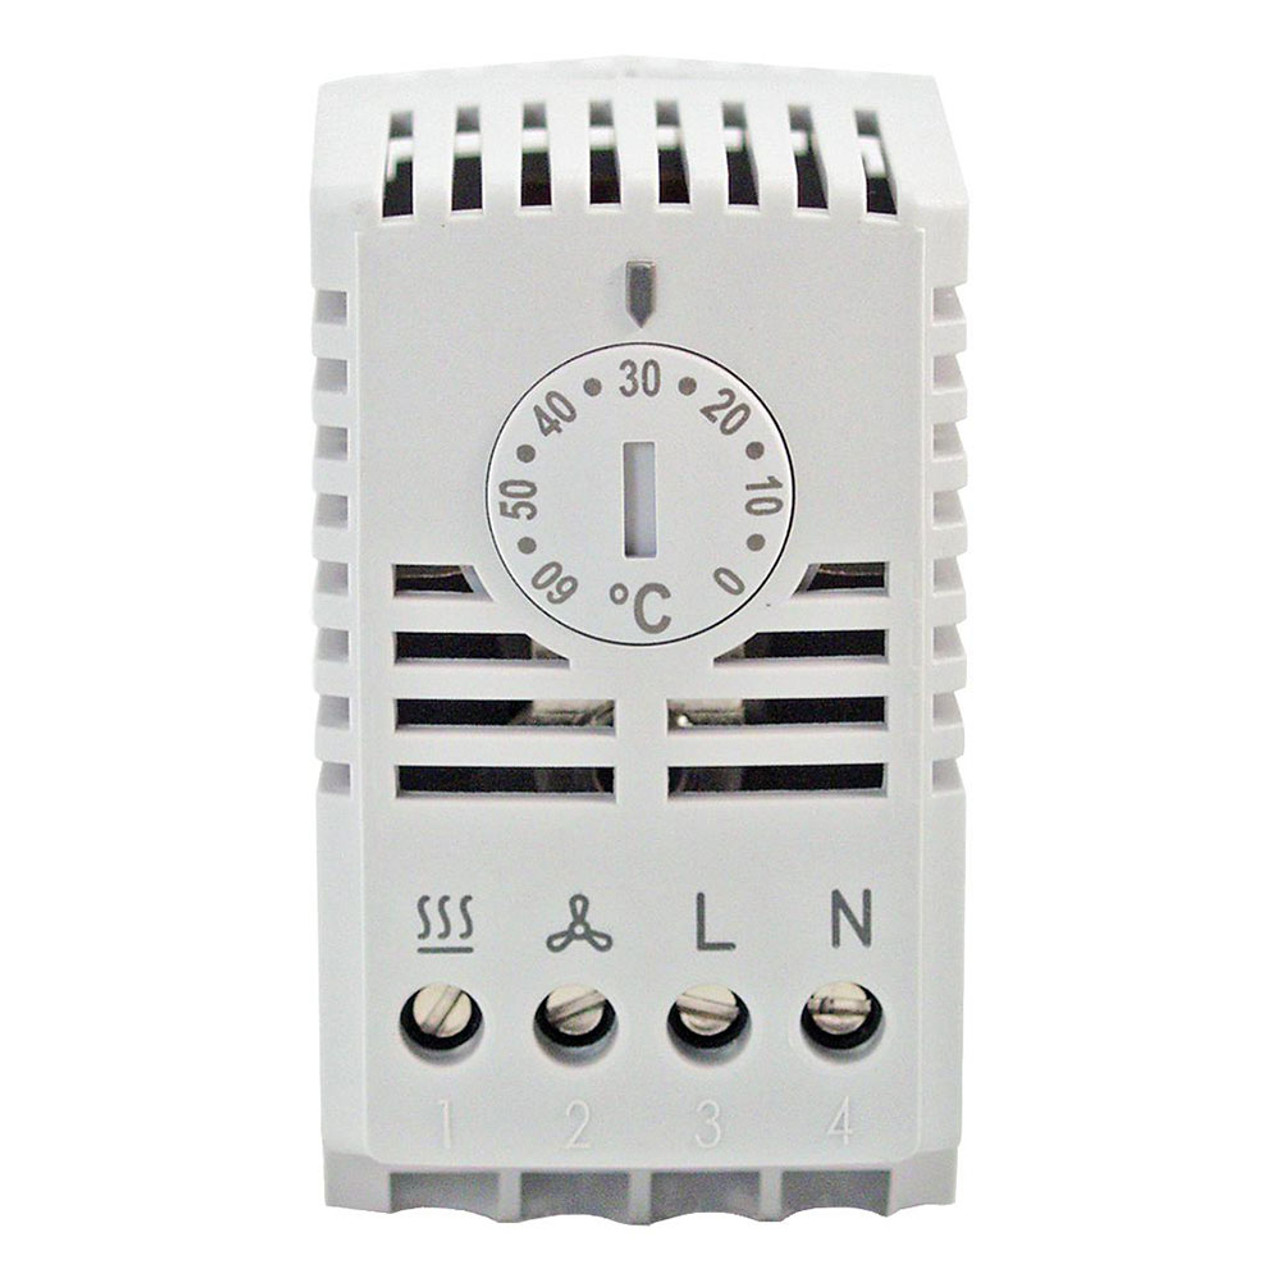 twr 60 thermostat controller 0 60 c range changeover contact with thermal feedback